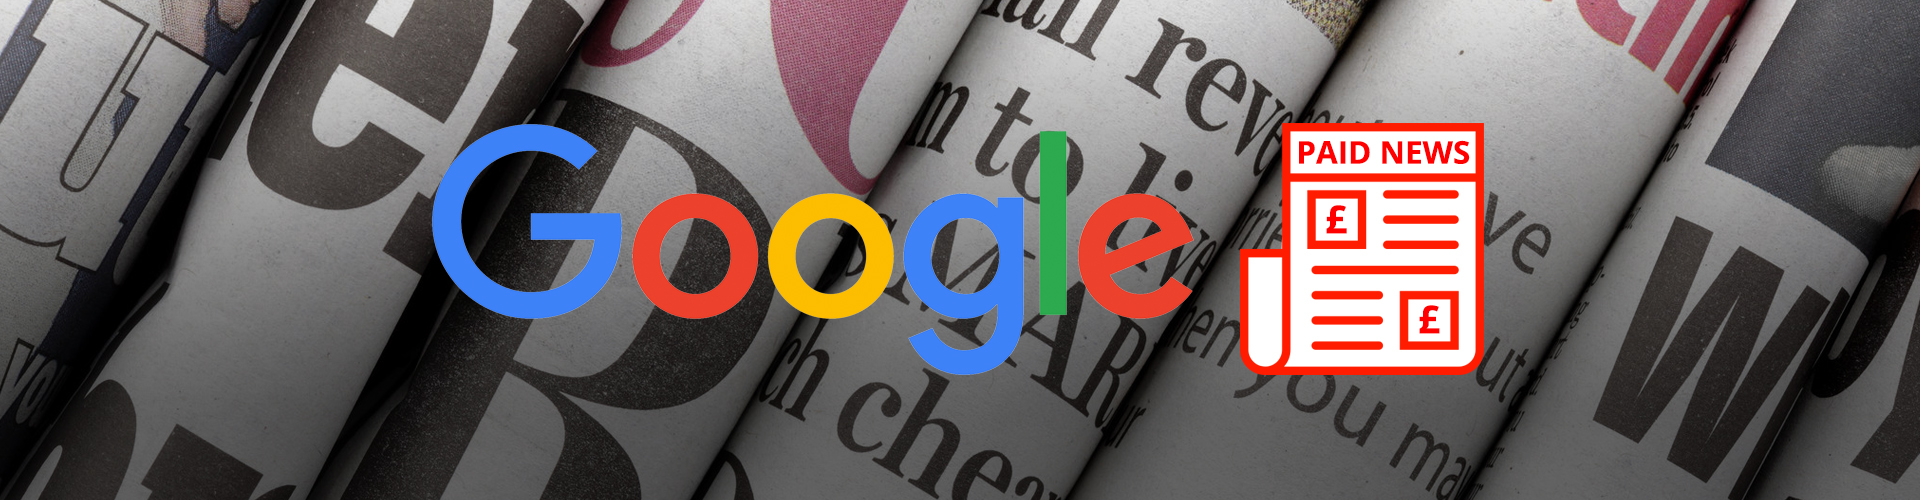 Does Google Discriminate Against Paid News?